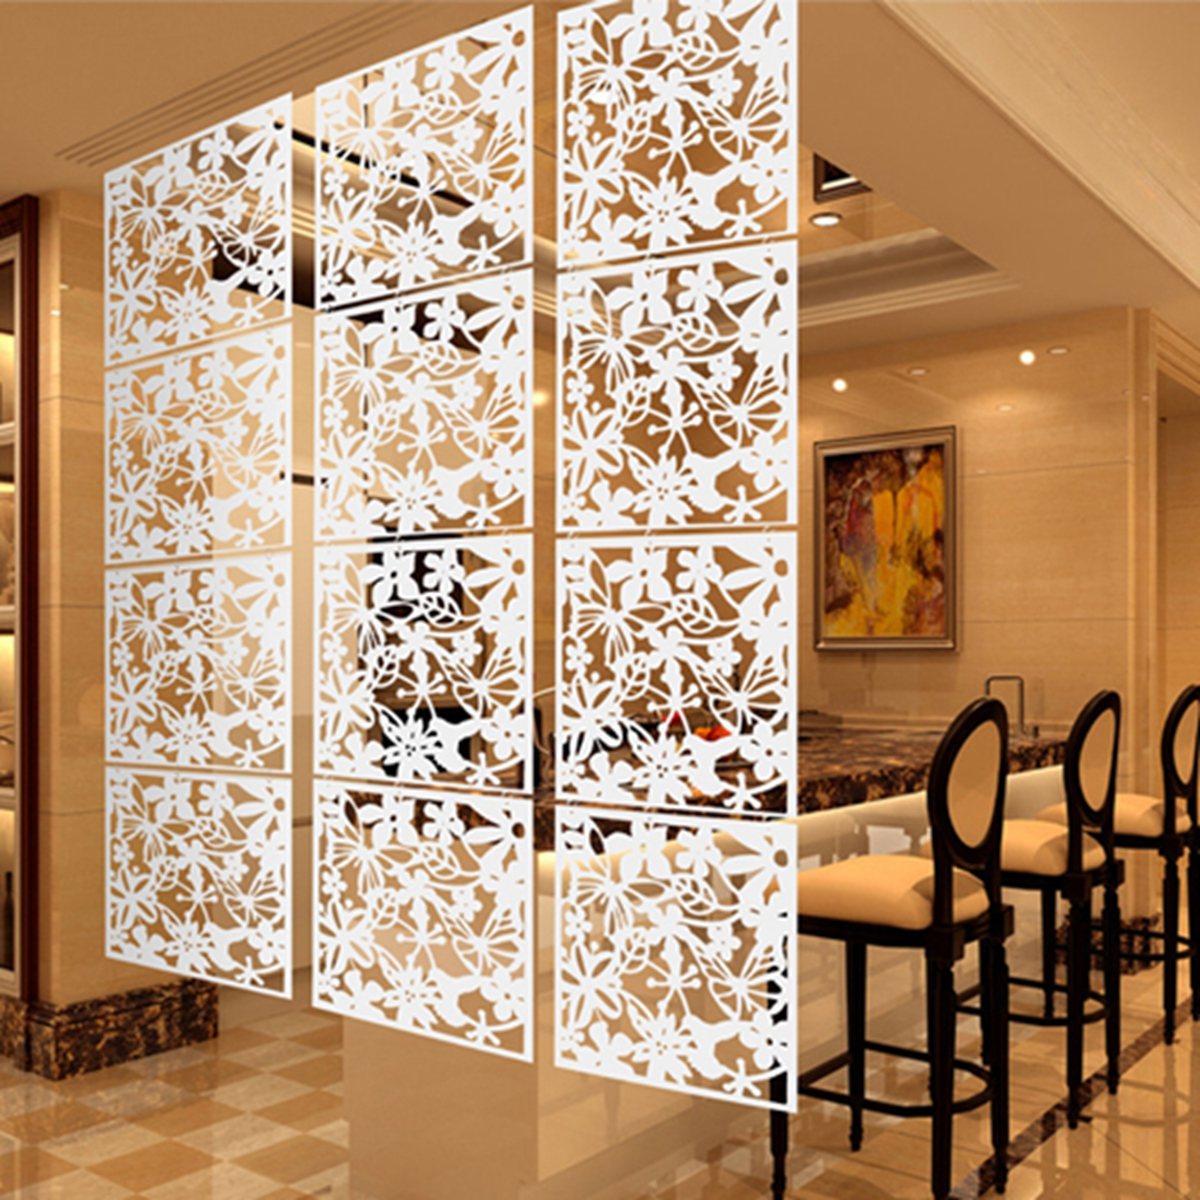 Room Partition Wall: 4pcs-Hanging-Screen-Partition-Room-Divider-Butterfly